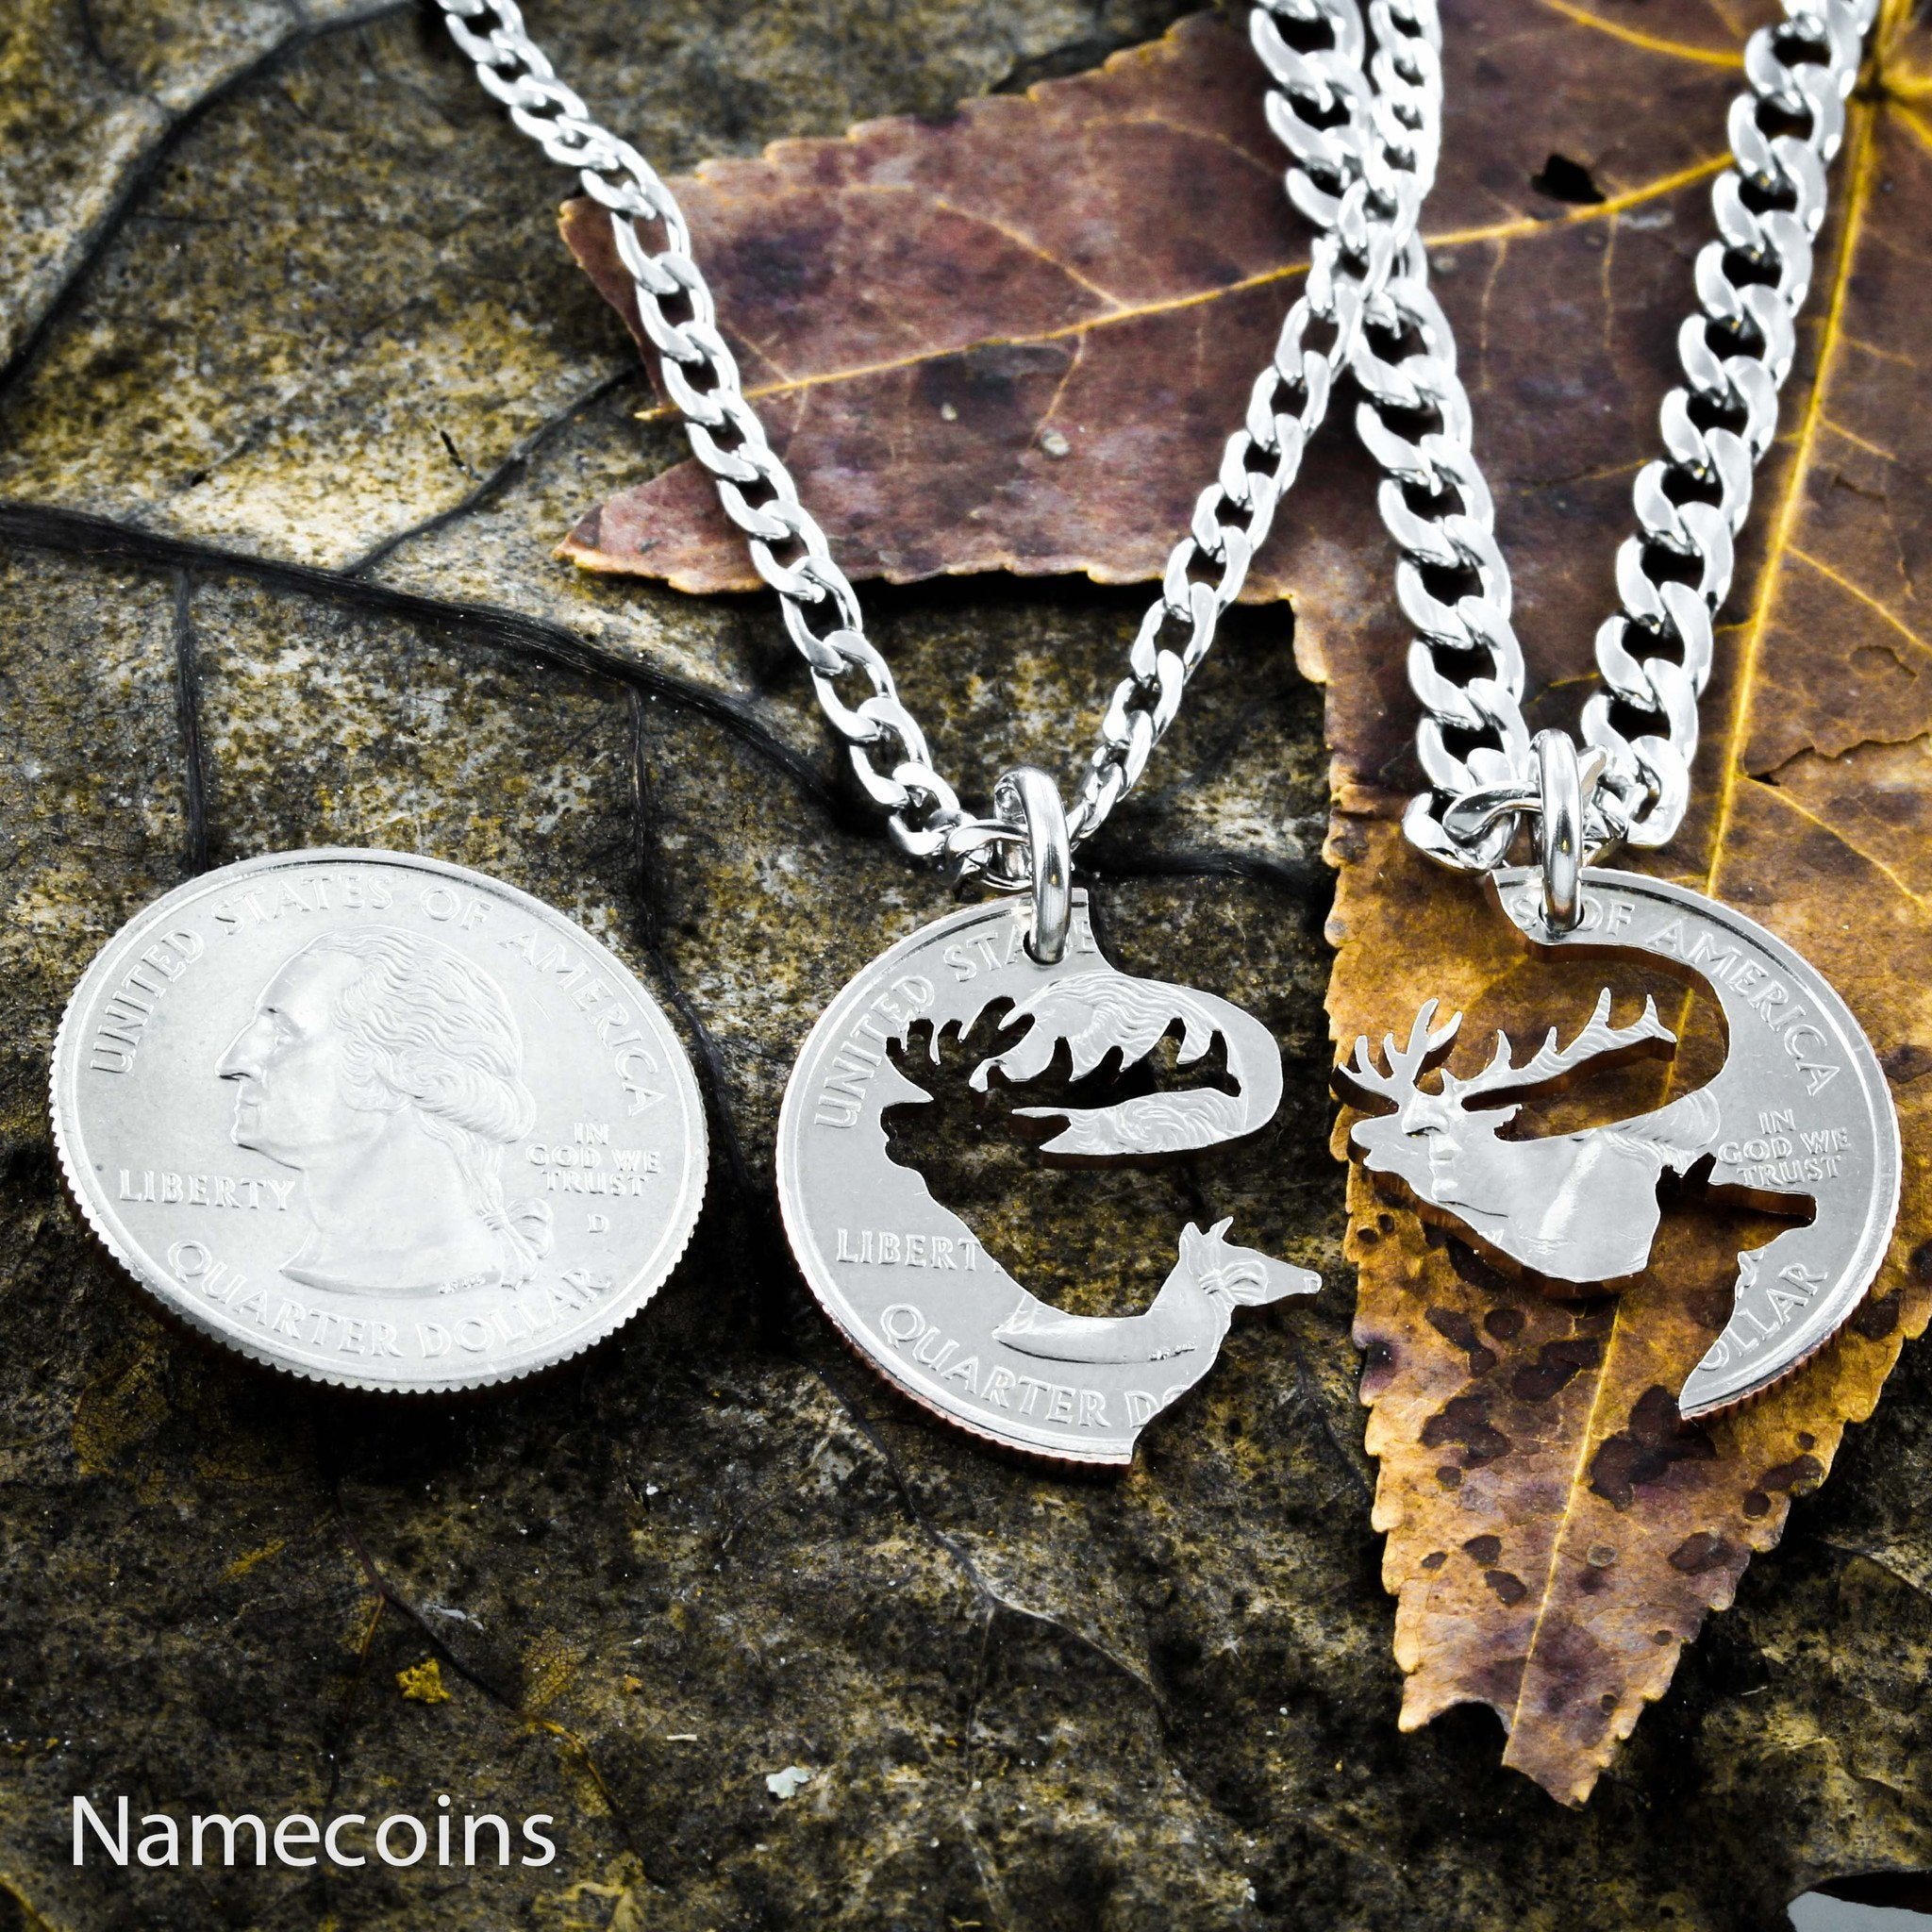 Elks couples coin puzzle jewelry set - NameCoins